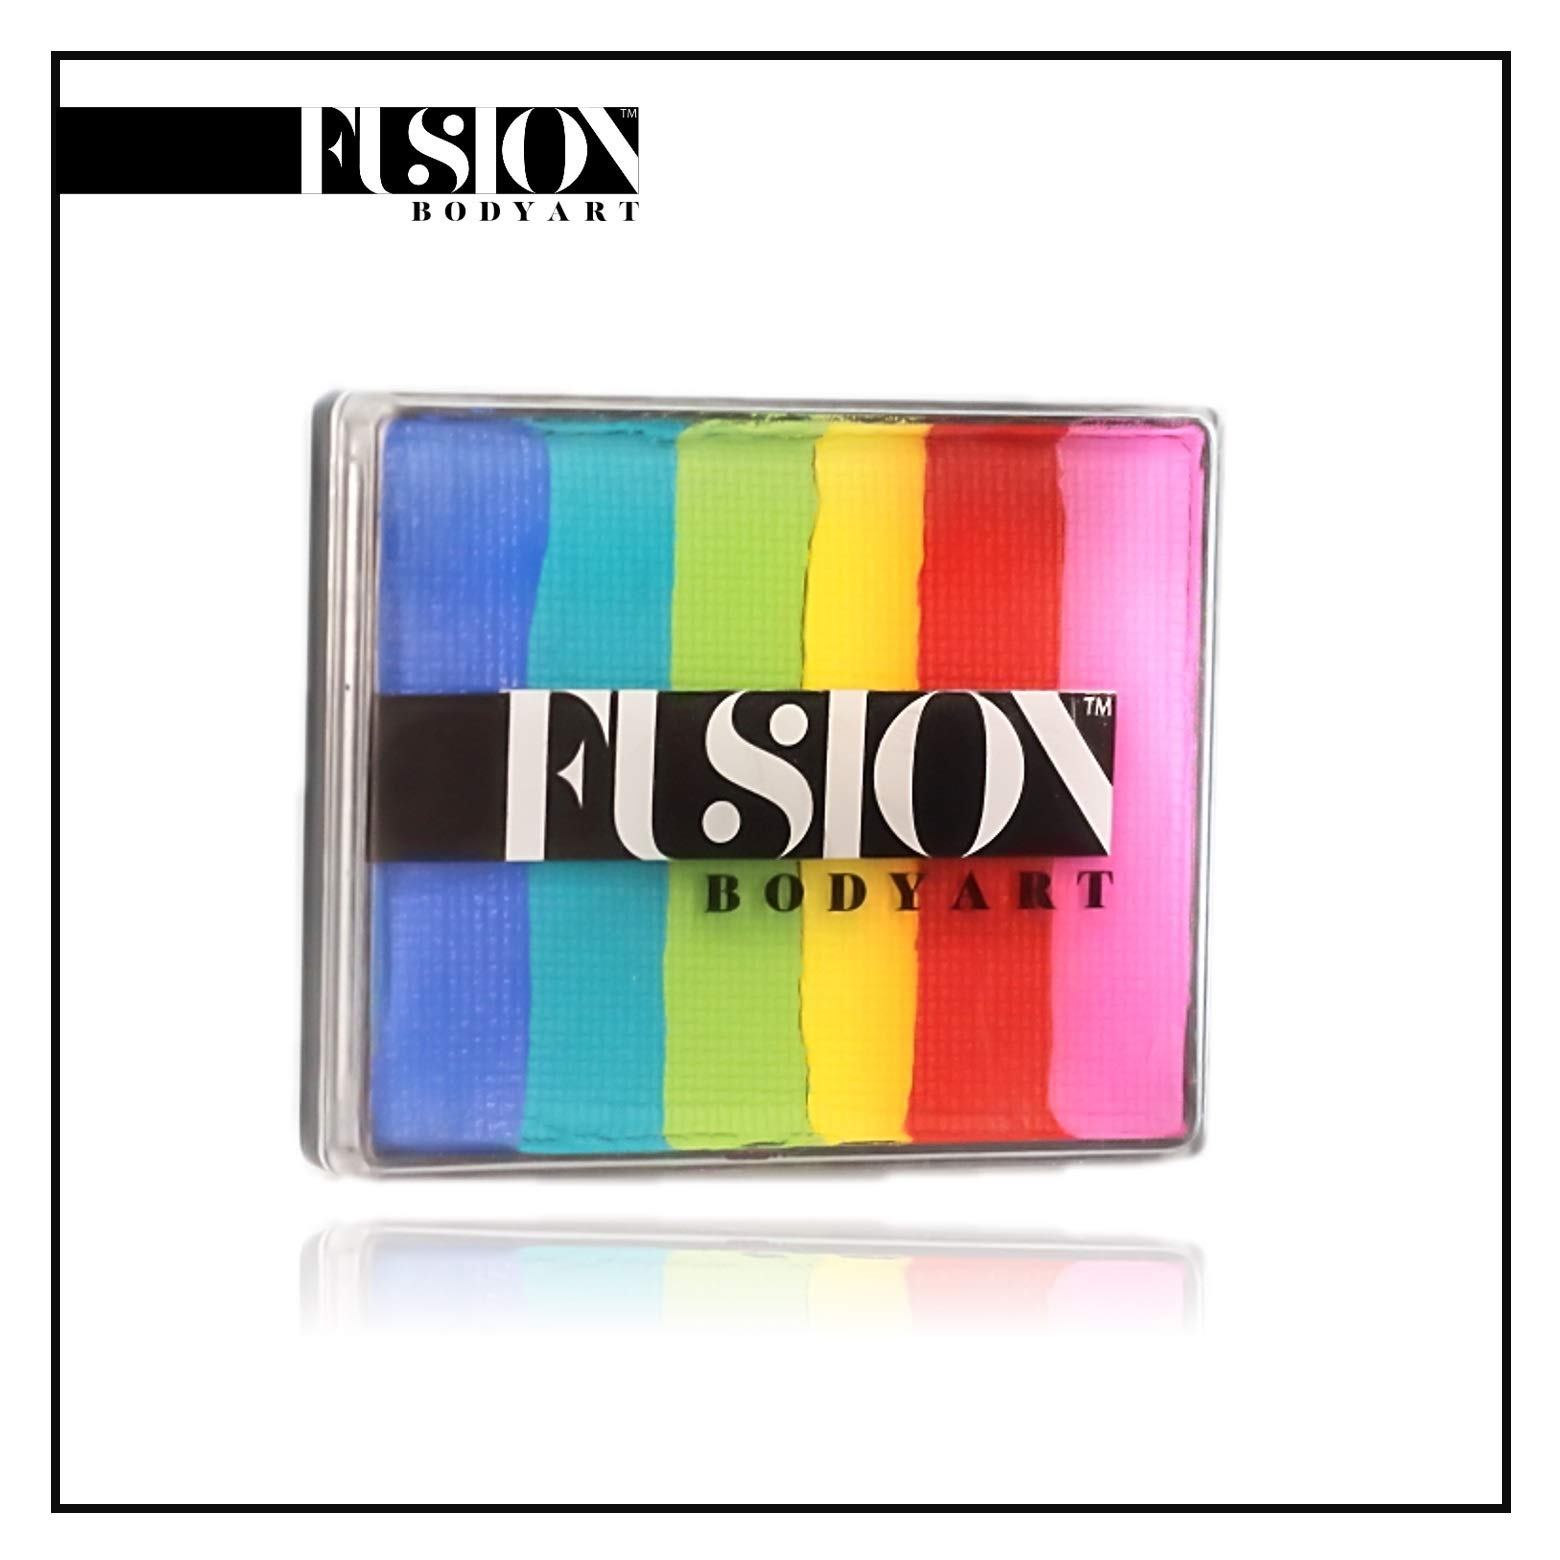 FUSION BODY ART Pro Quality Professional Water Based Face Paint Rainbow Cake - Bright Rainbow 50gr | Hypoallergenic Safe & Non-Toxic - Easy to Painting and Washing | US FDA and EU compliant by FUSION BODY ART